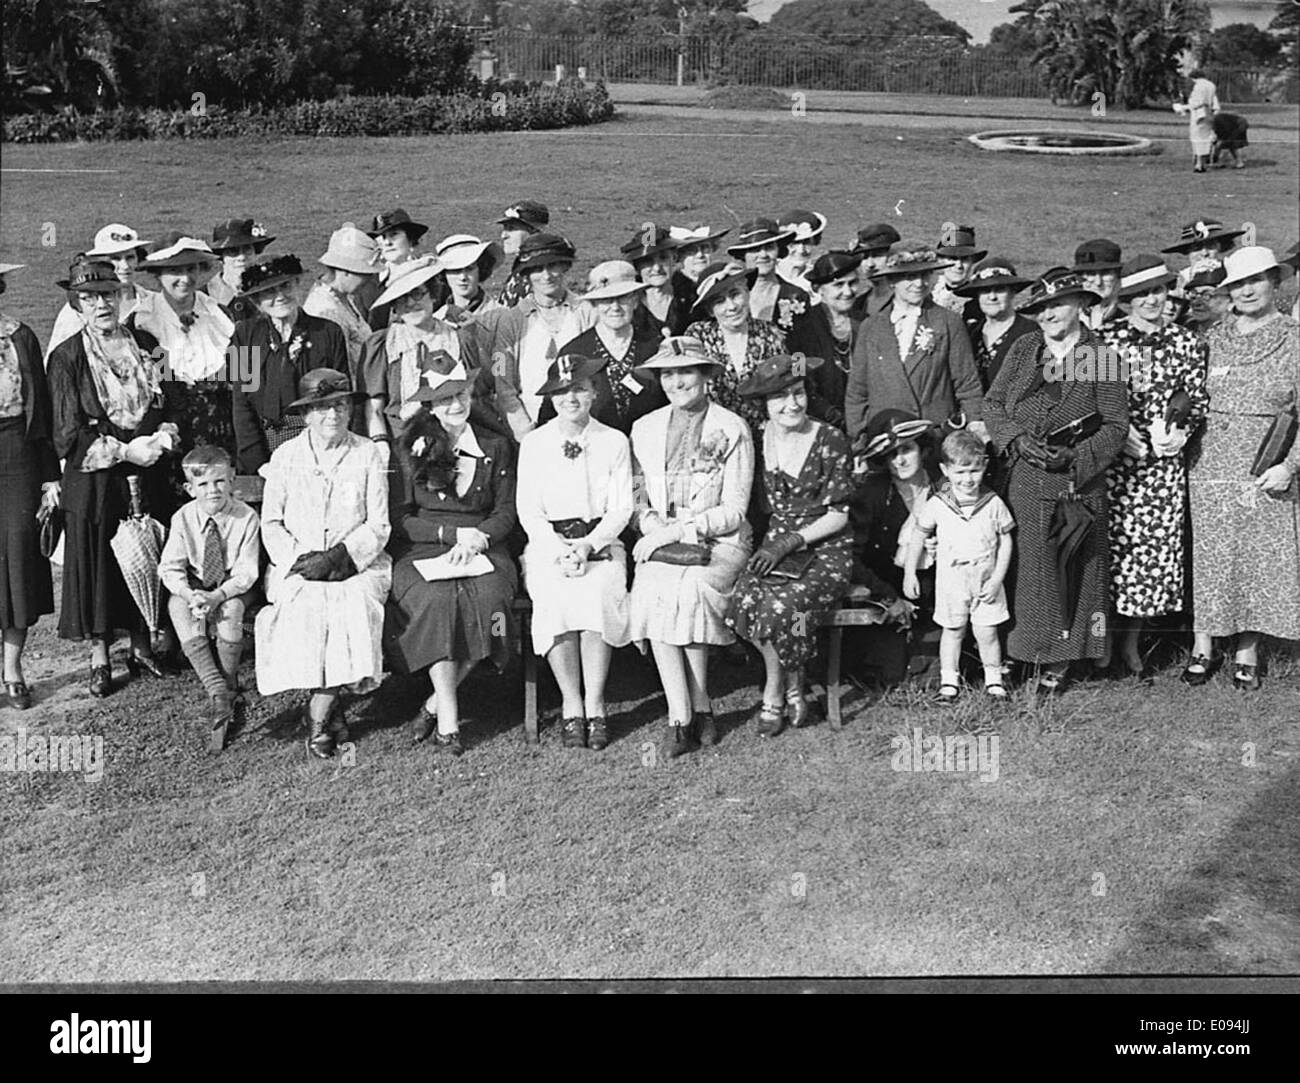 Country Women's Association at Gardens, 14 January 1937, by Sam Hood Stock Photo